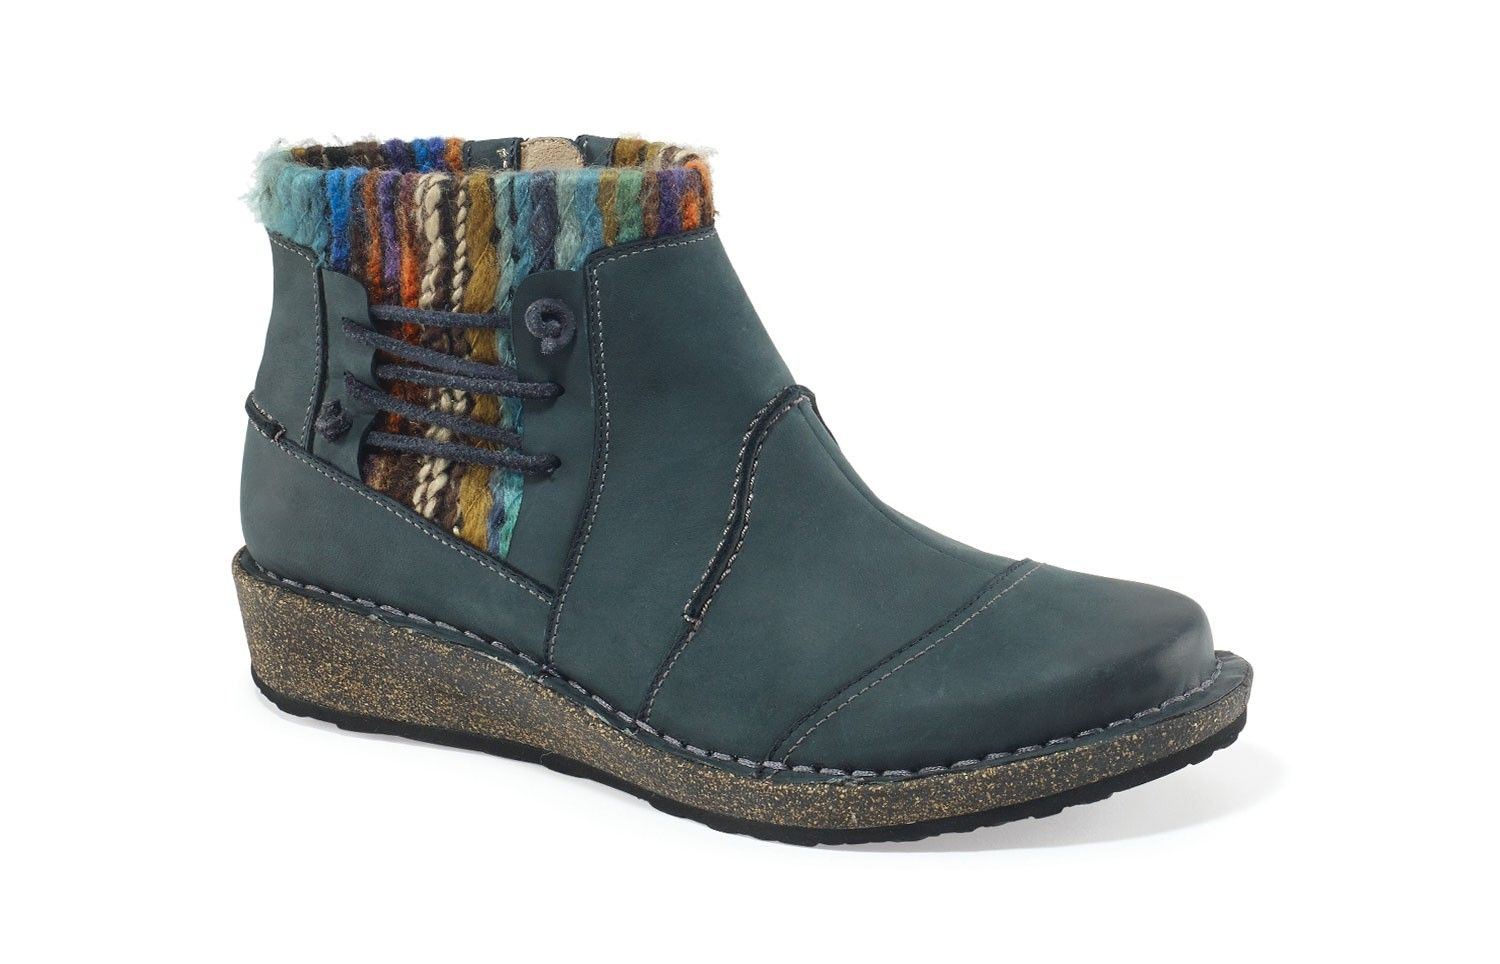 0e5f5d3165c7 TESSA SWEATER ANKLE BOOT - BLUE